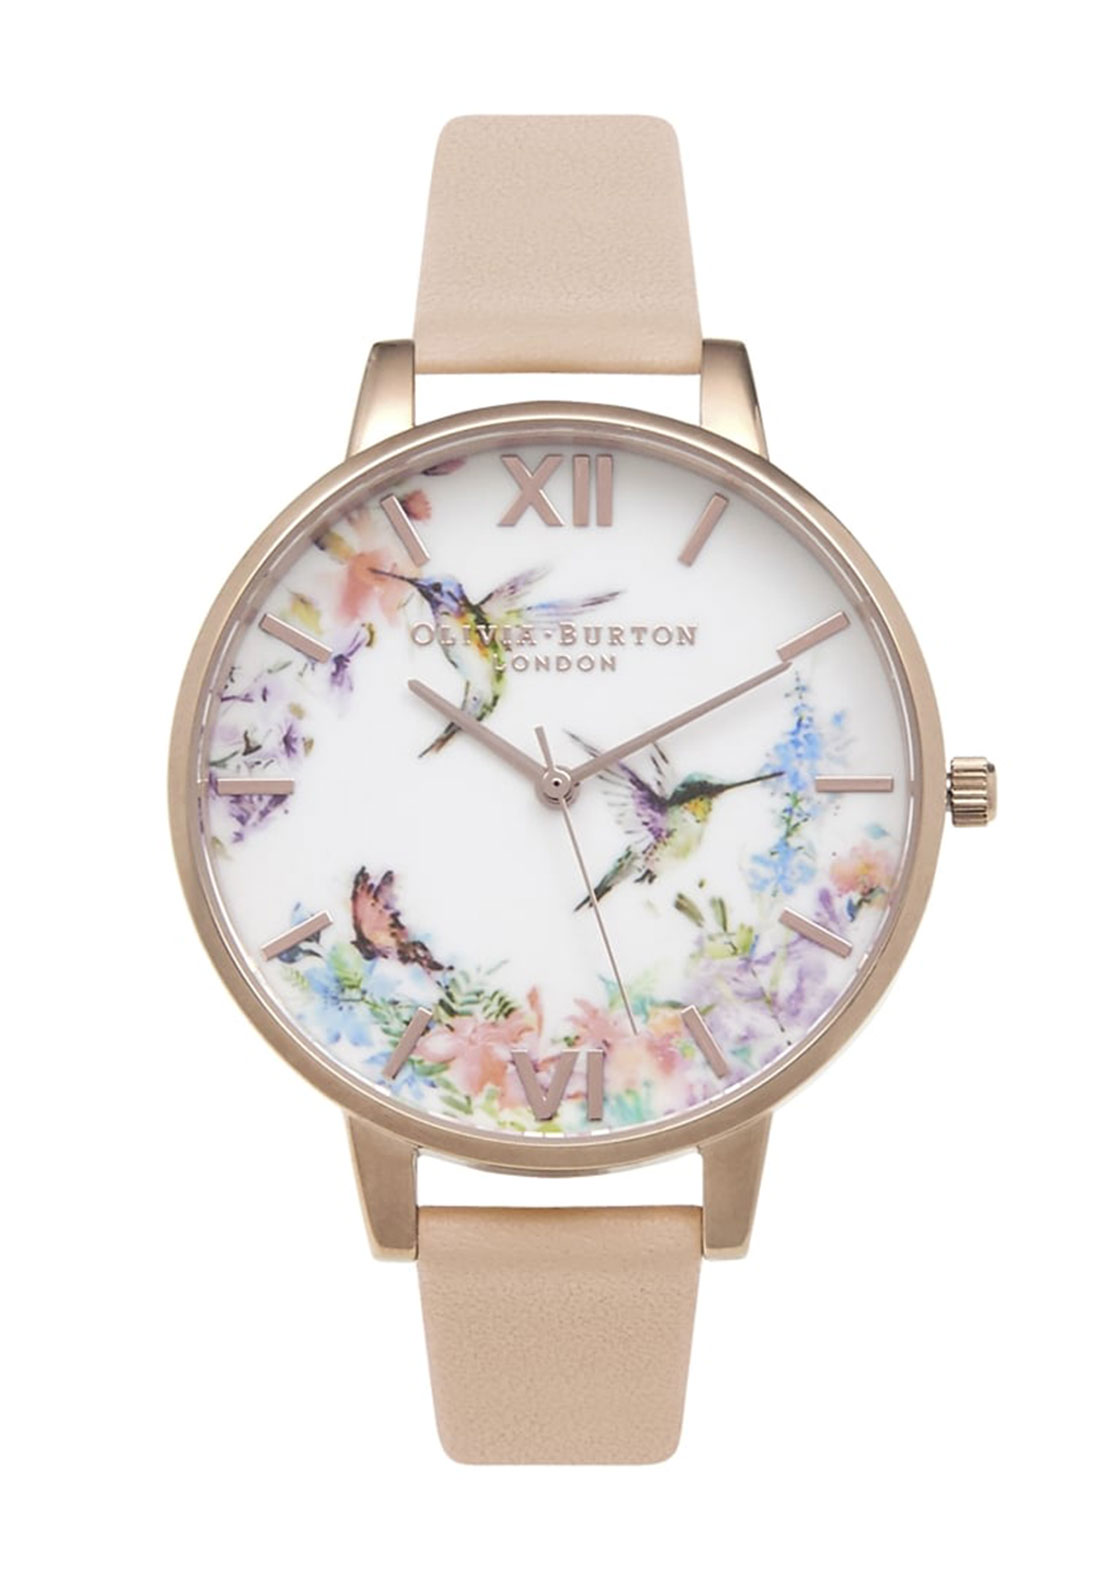 Olivia Burton London Painterly Prints Hummingbird Watch, Peach & Rose Gold